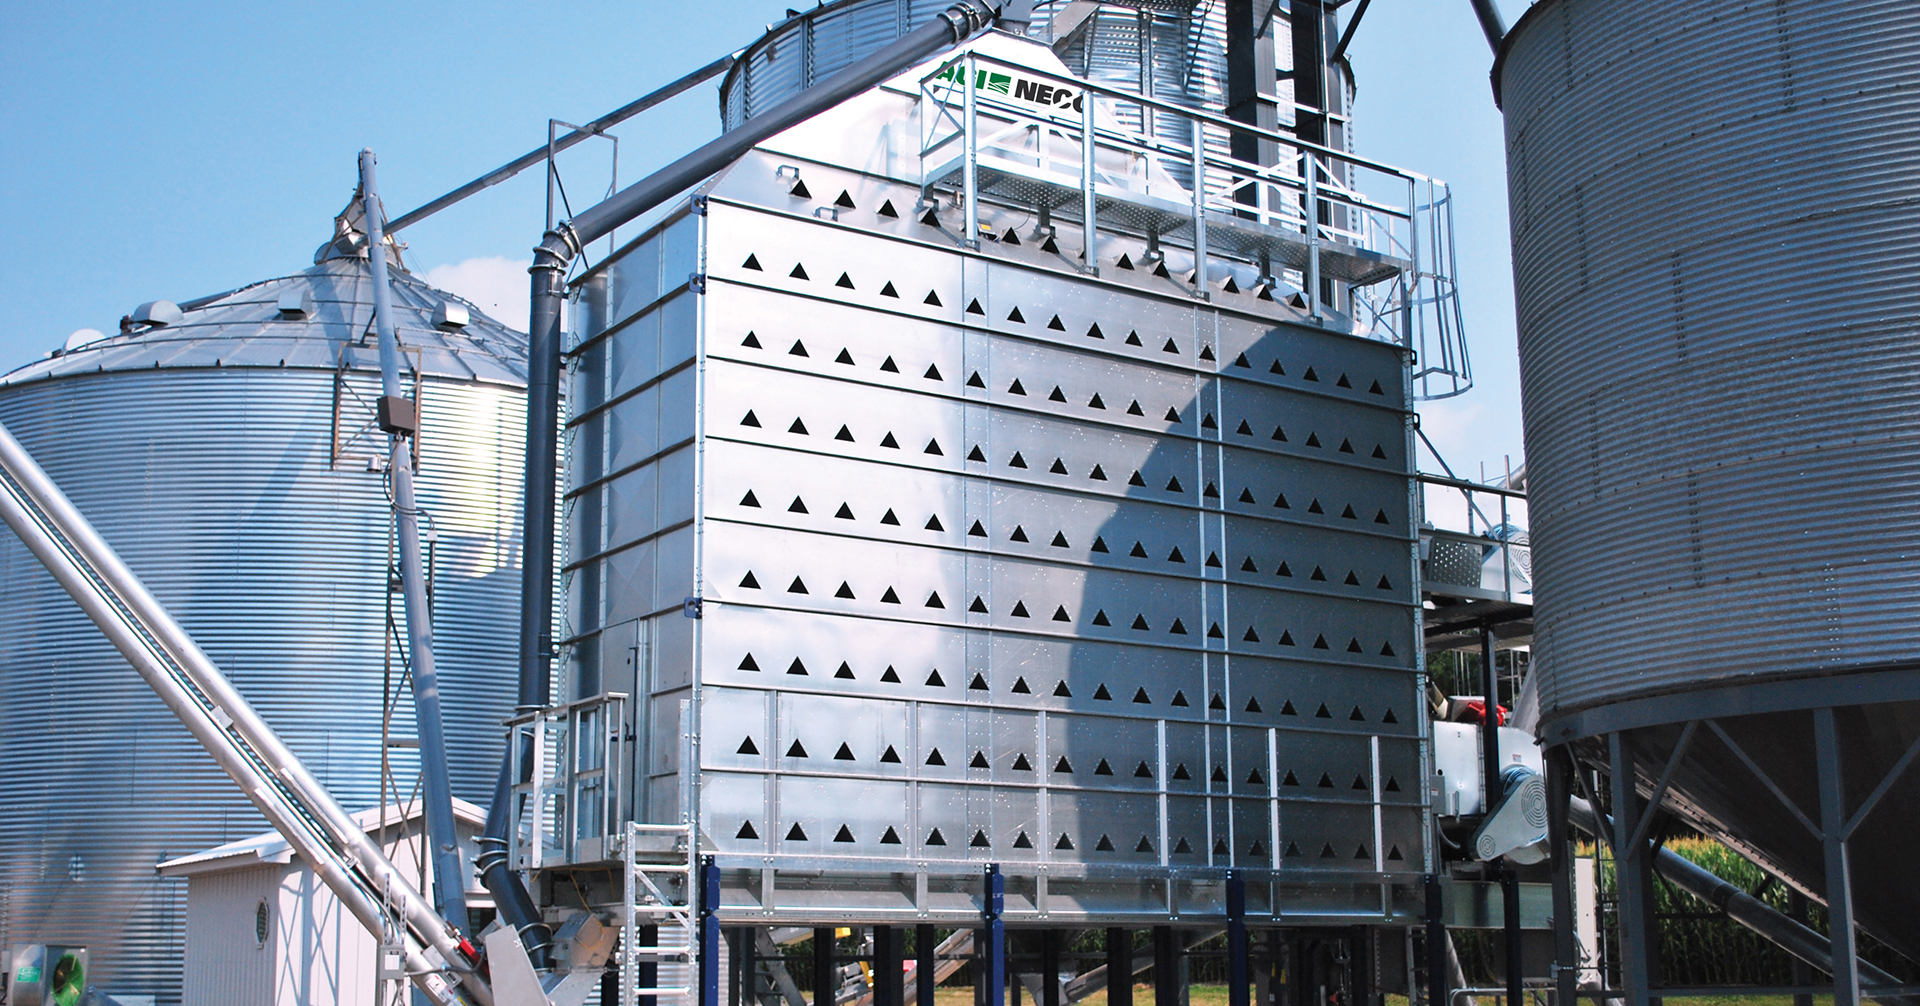 Neco Grain Dryer Installation